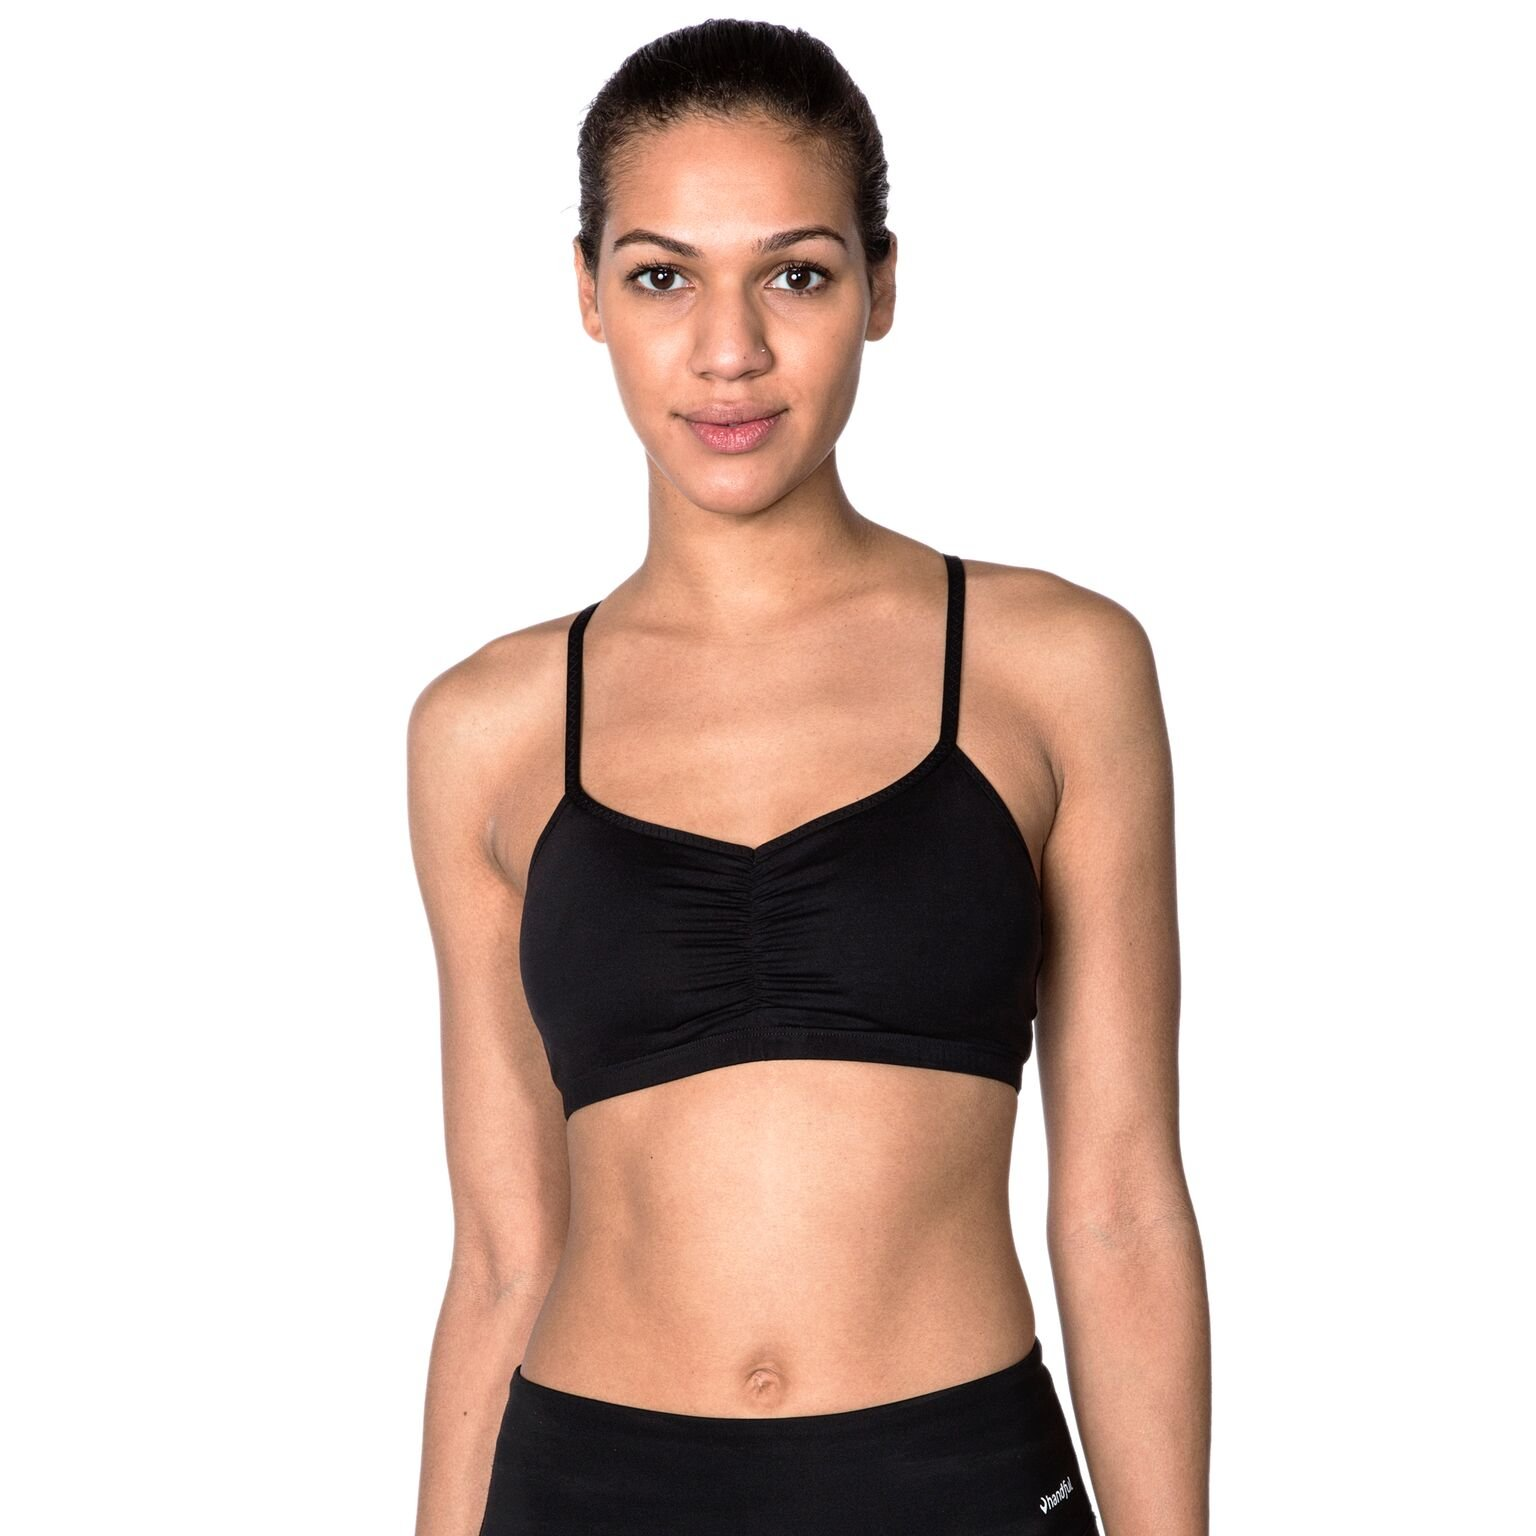 Handful Women's Adjustable Sports Bra with Removable Pads, Versatile Workout Bras